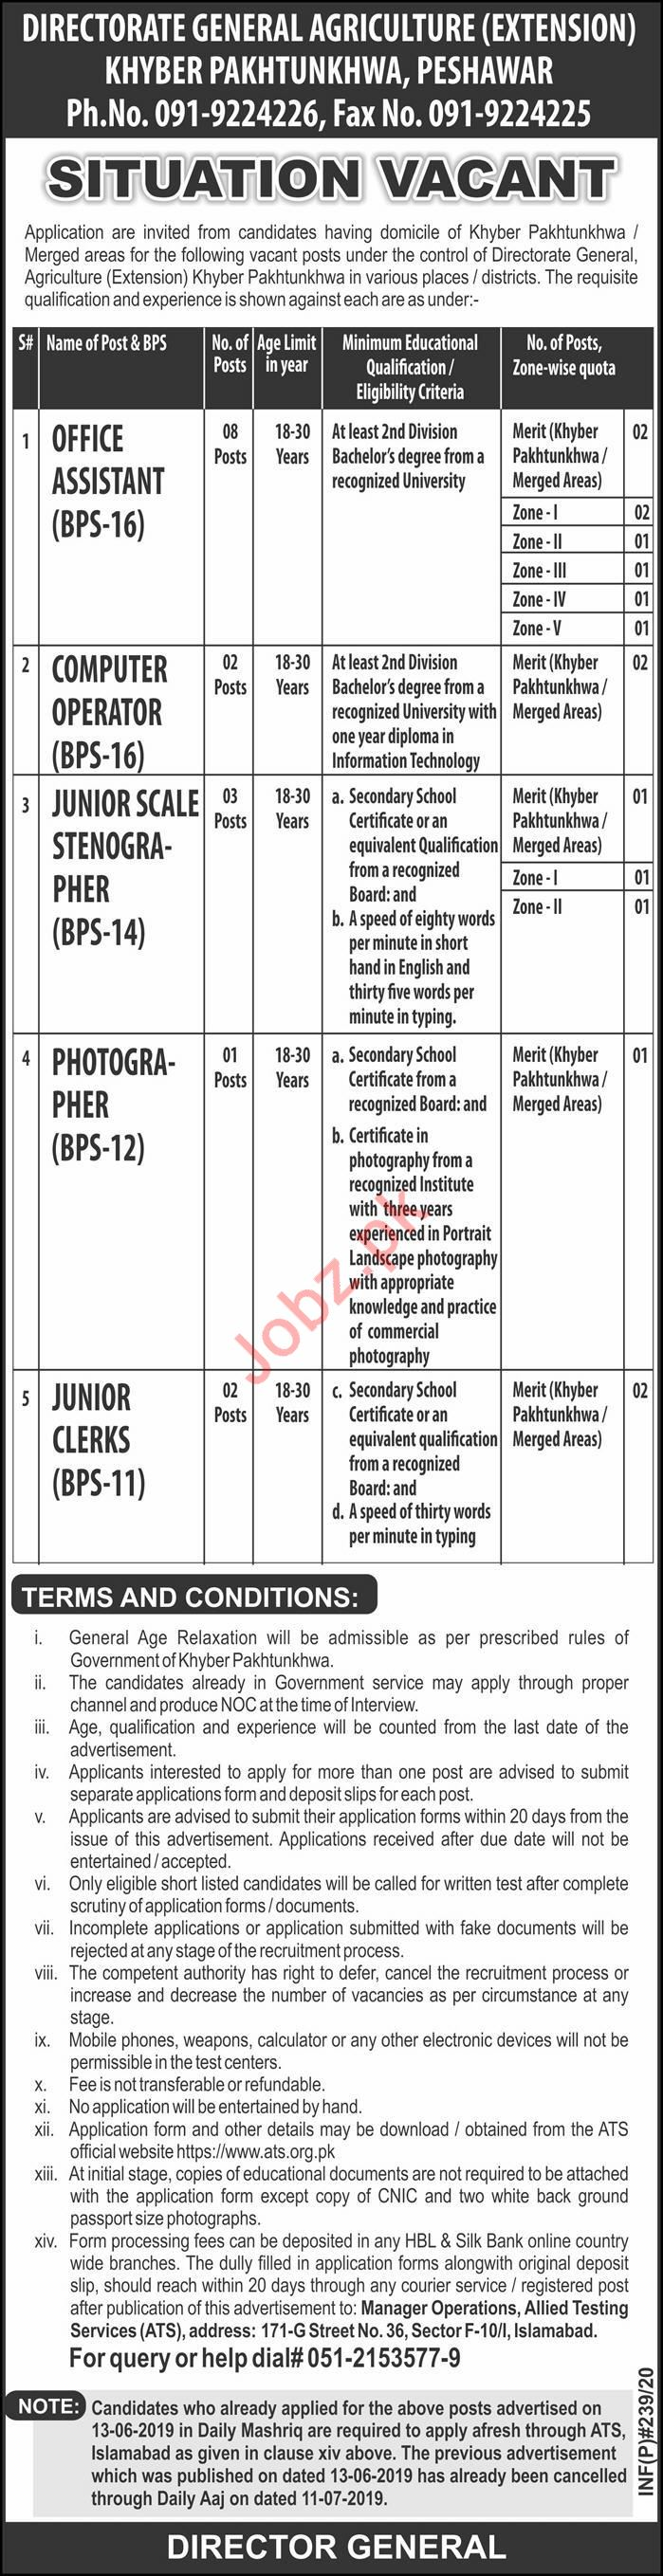 Clerical Jobs in Directorate General Agriculture KpK Via ATS